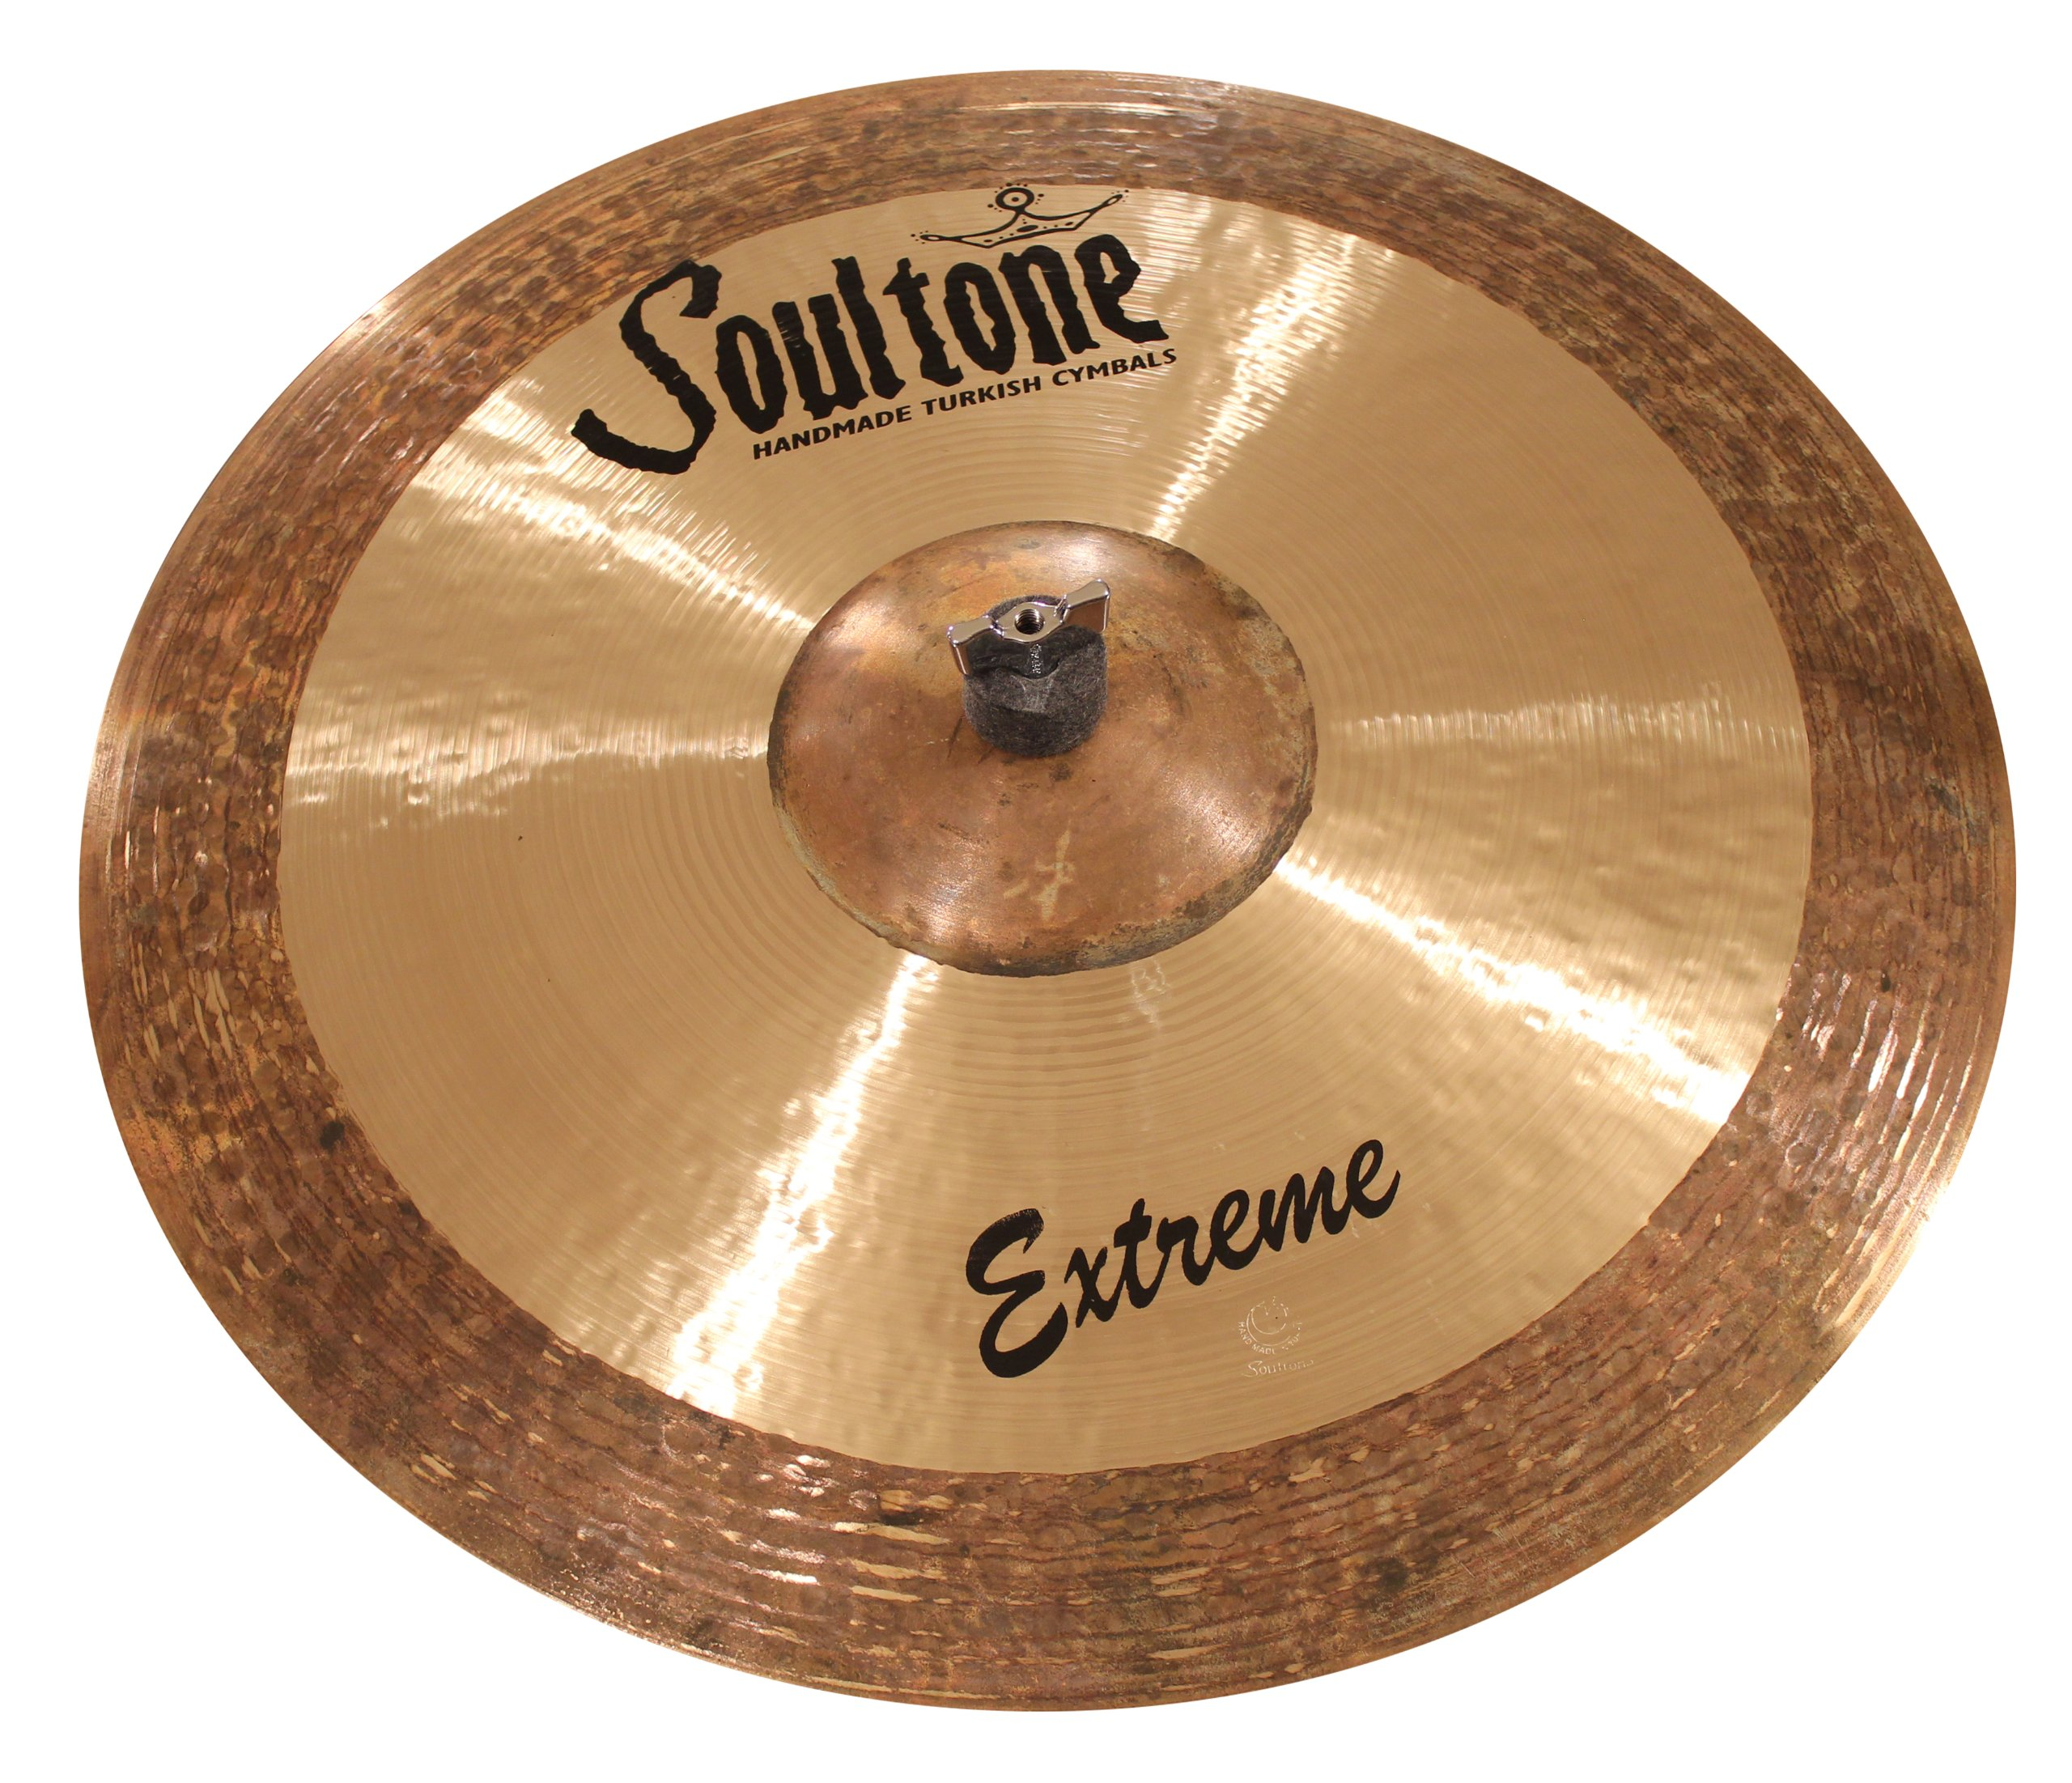 Soultone Cymbals EXT-RID18-18'' Soultone Cymbals Extreme Ride by Soultone Cymbals